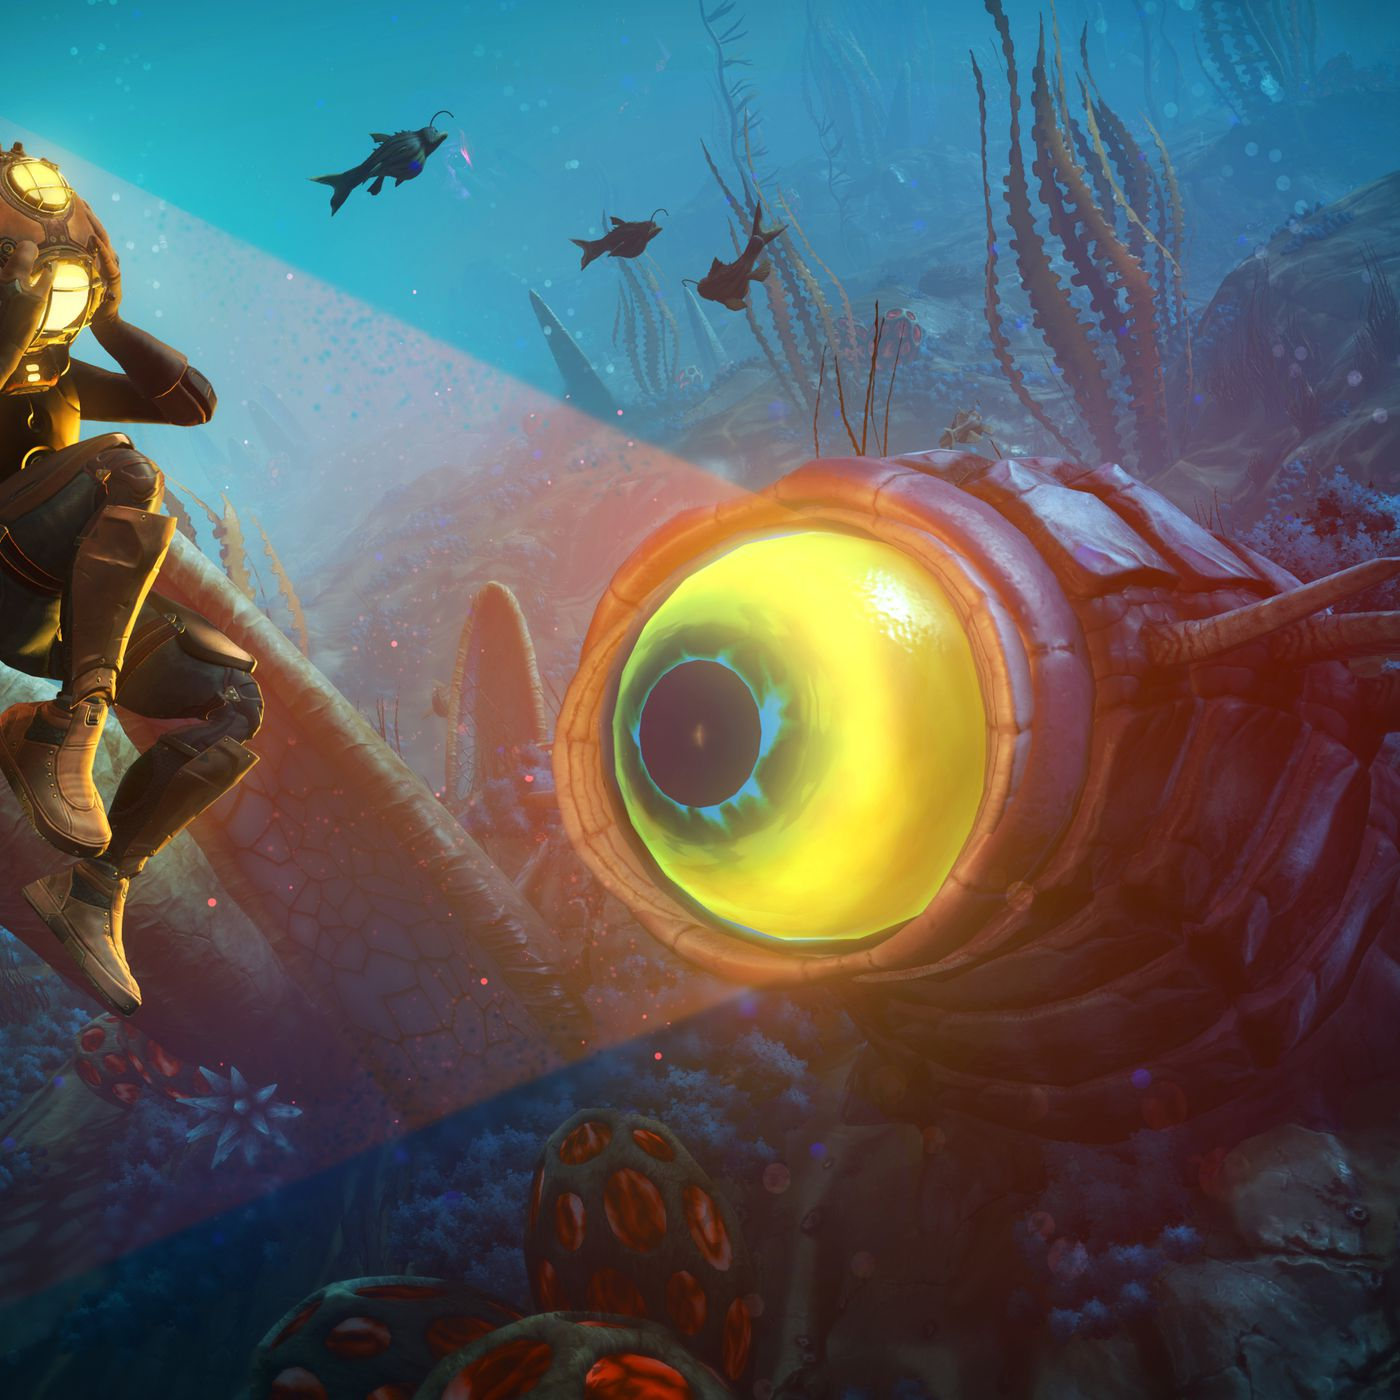 No Man's Sky's 'The Abyss' update adds sea monsters and